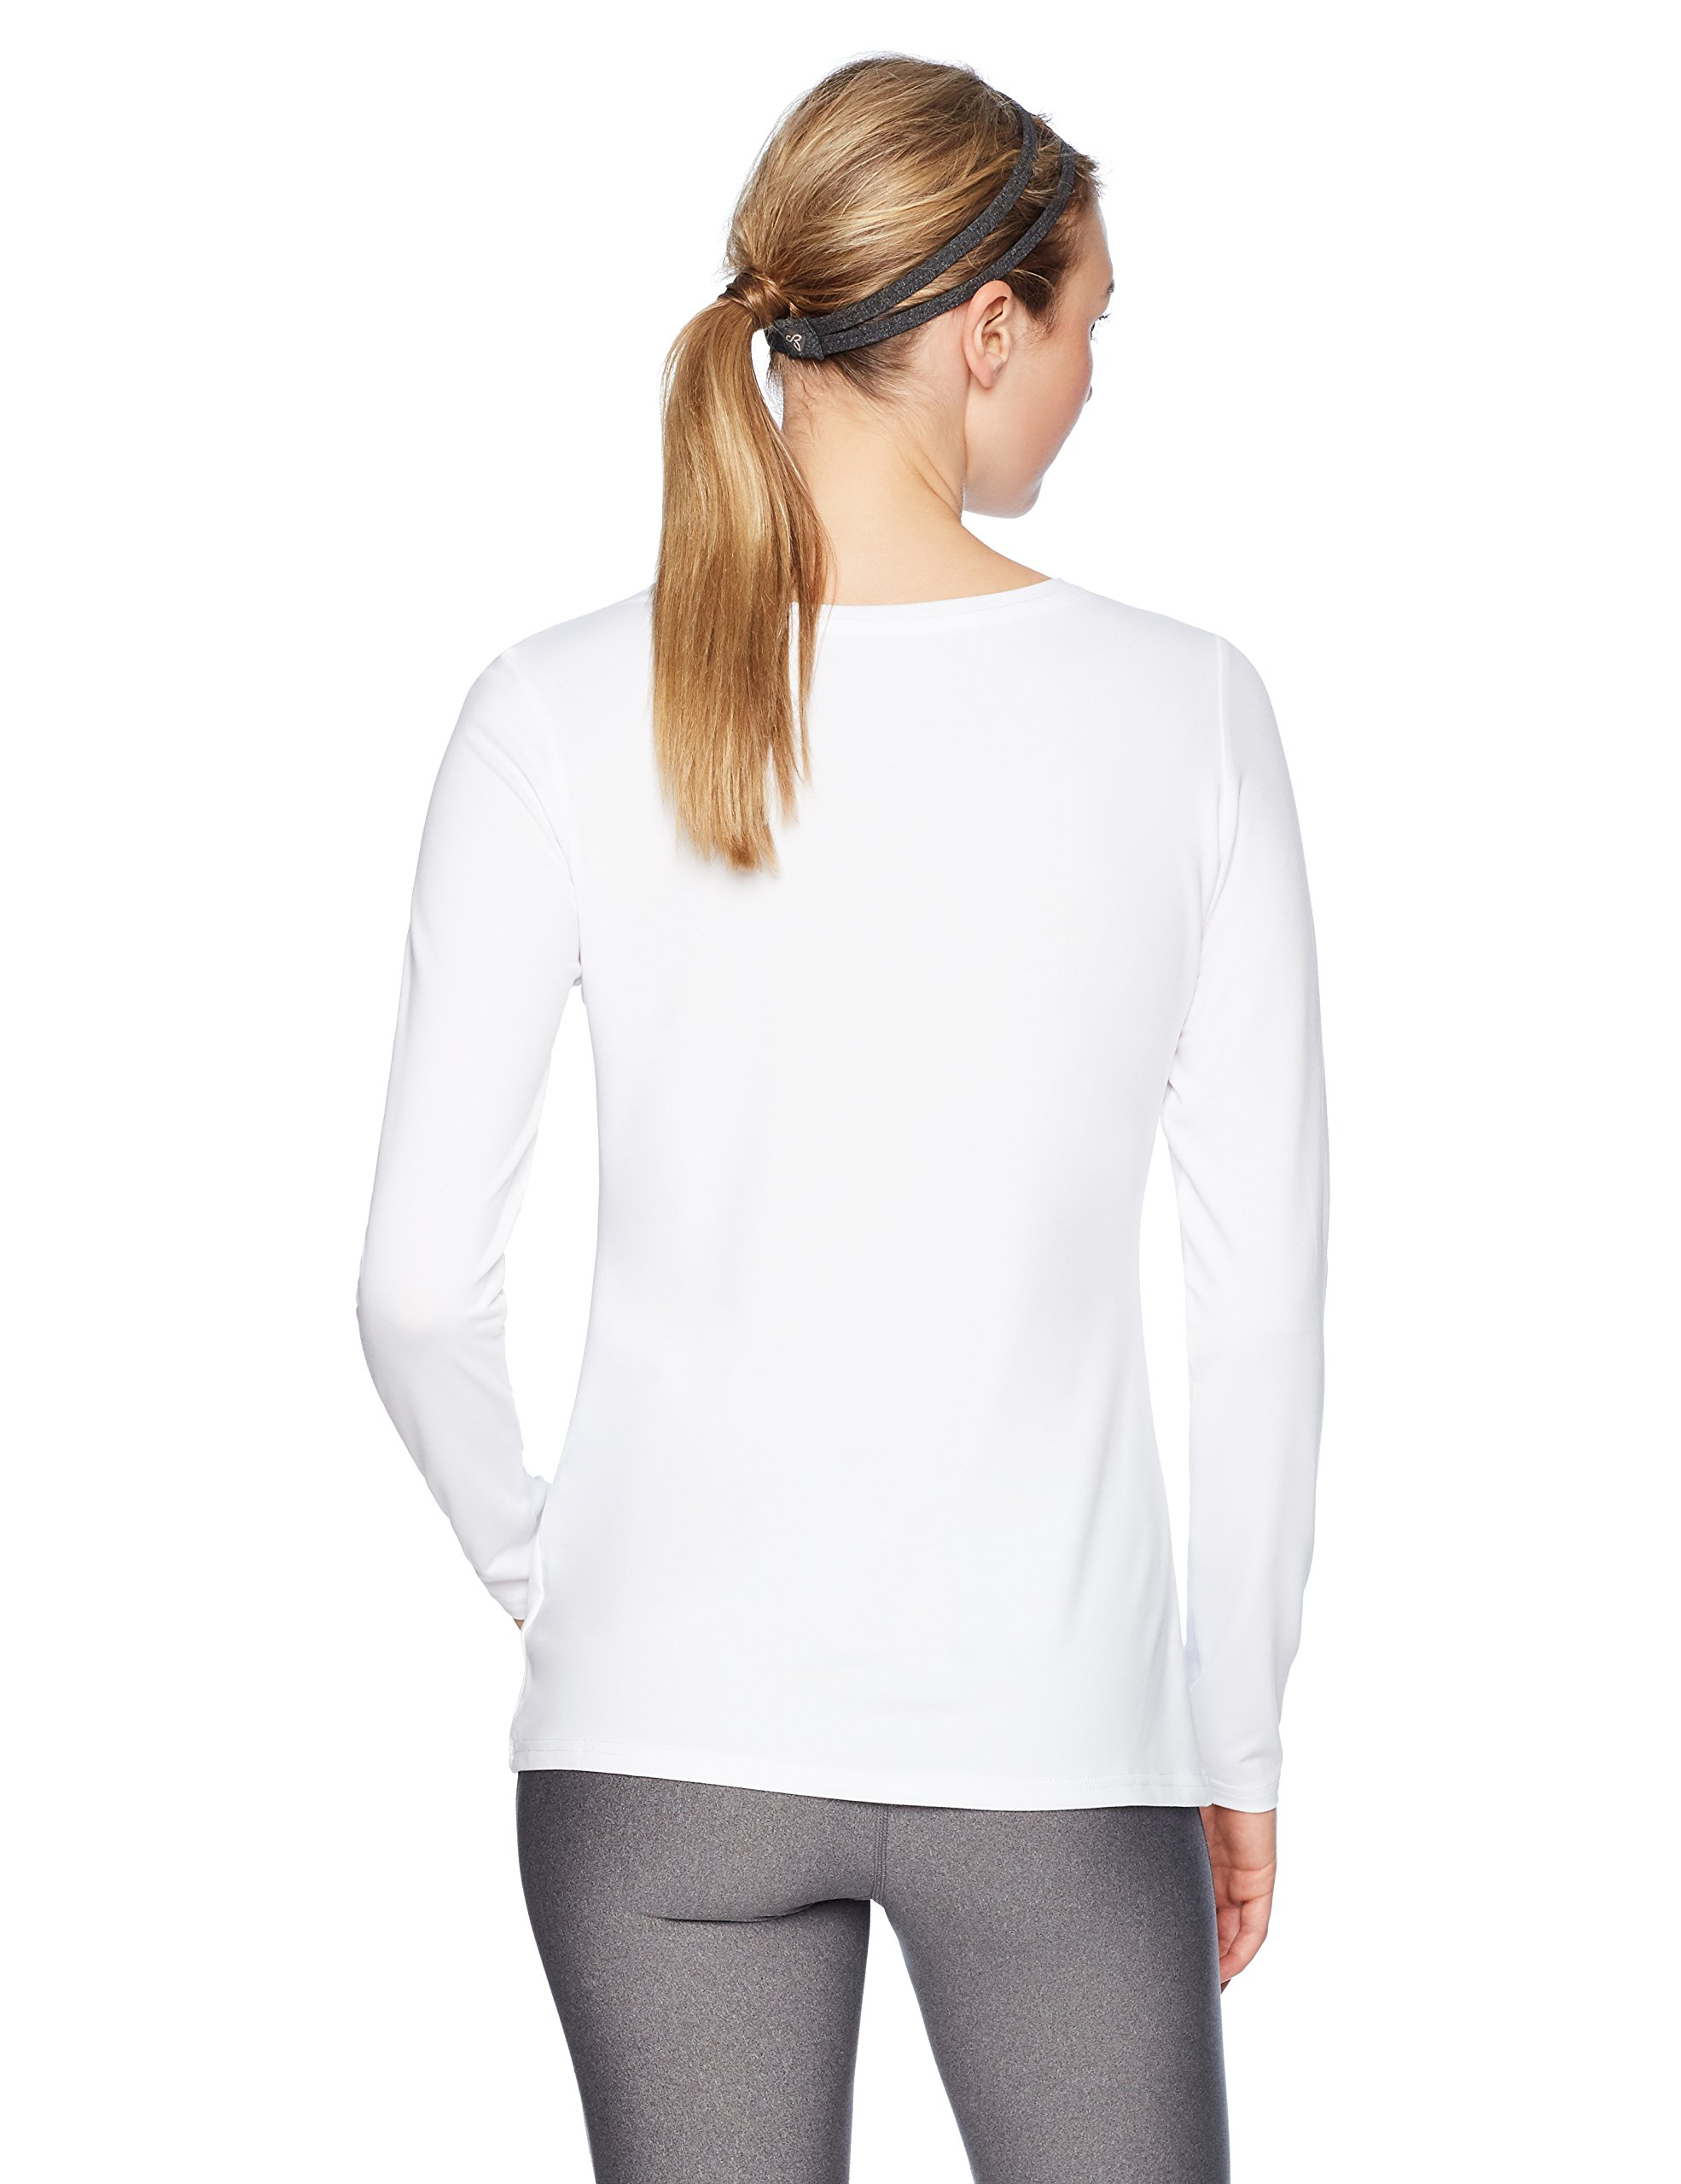 Amazon Essentials Women's Standard Tech Stretch Long-Sleeve T-Shirt, White, Large by Amazon Essentials (Image #3)